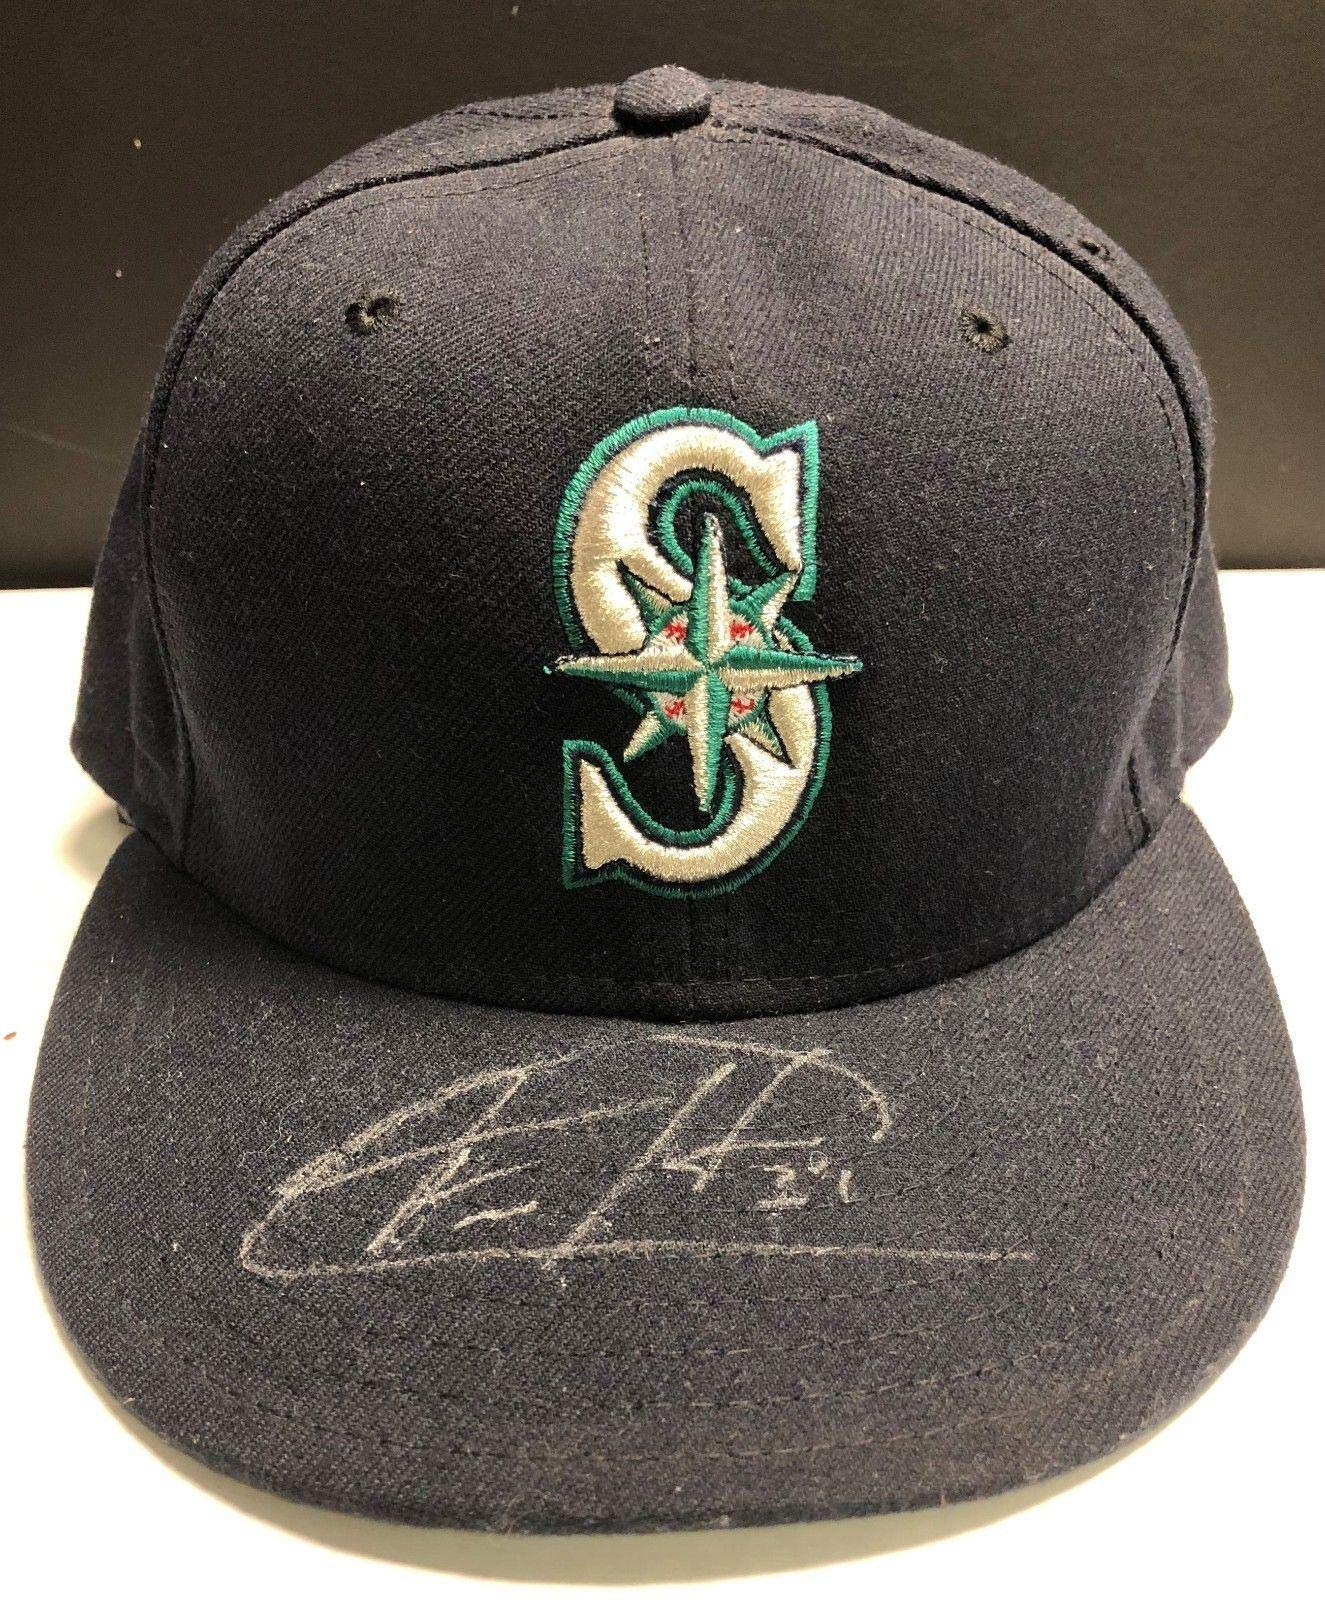 Felix Hernandez Signed Seattle Mariners New Era Fitted Hat AC65716 Auto PSA/DNA Certified Autographed Hats